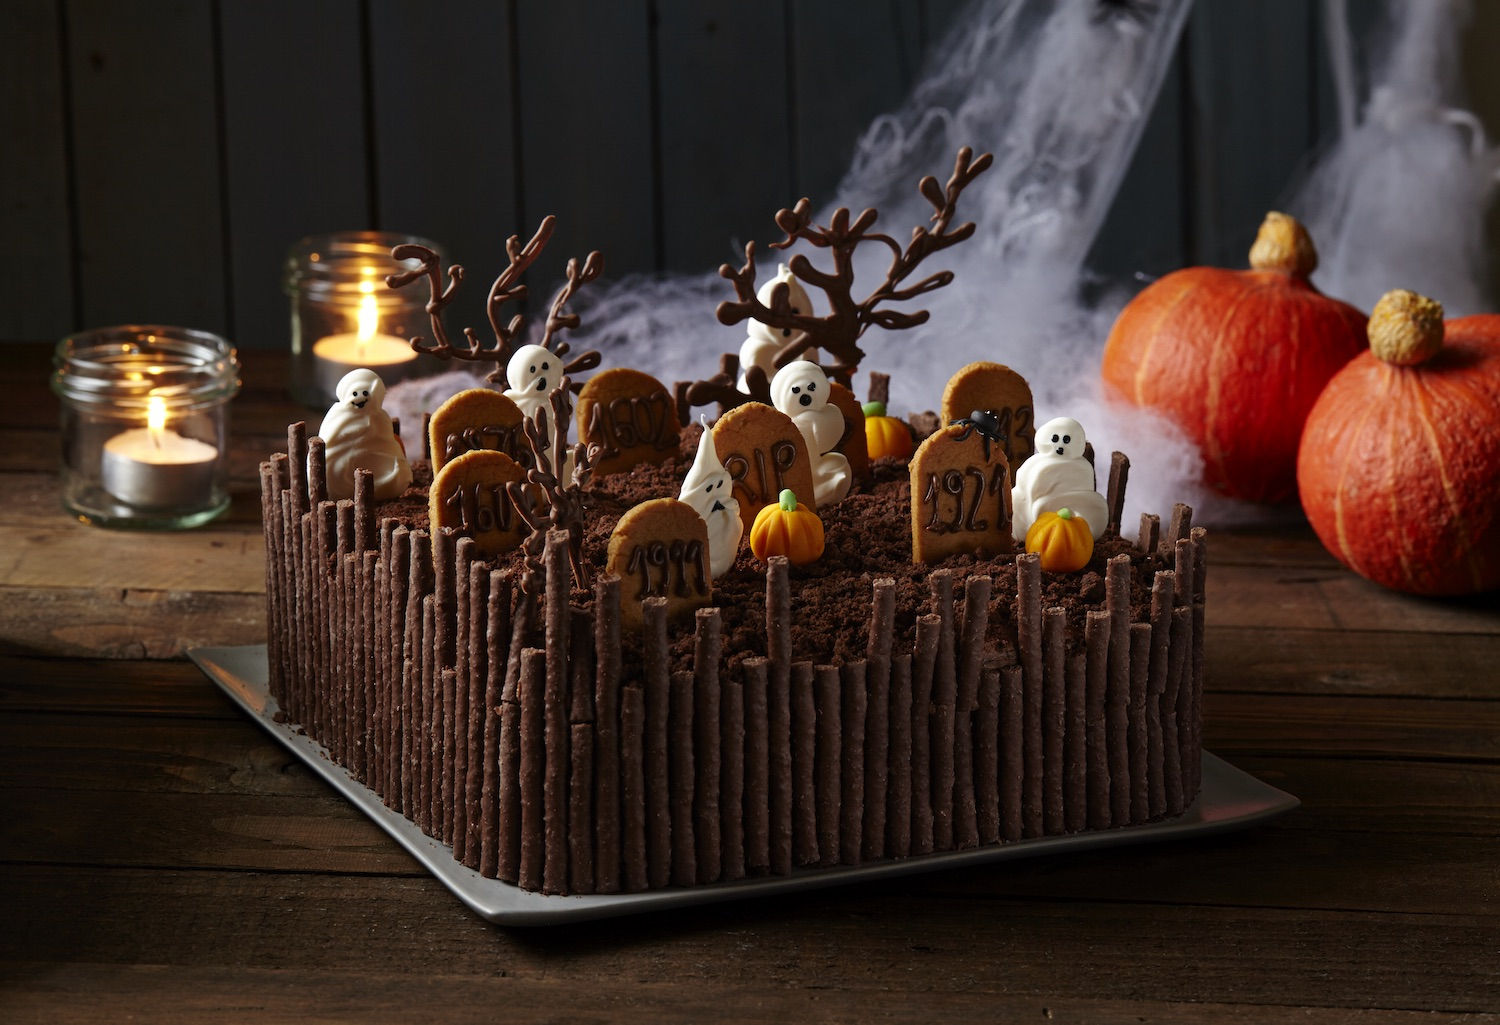 Graveyard Cake recommendations